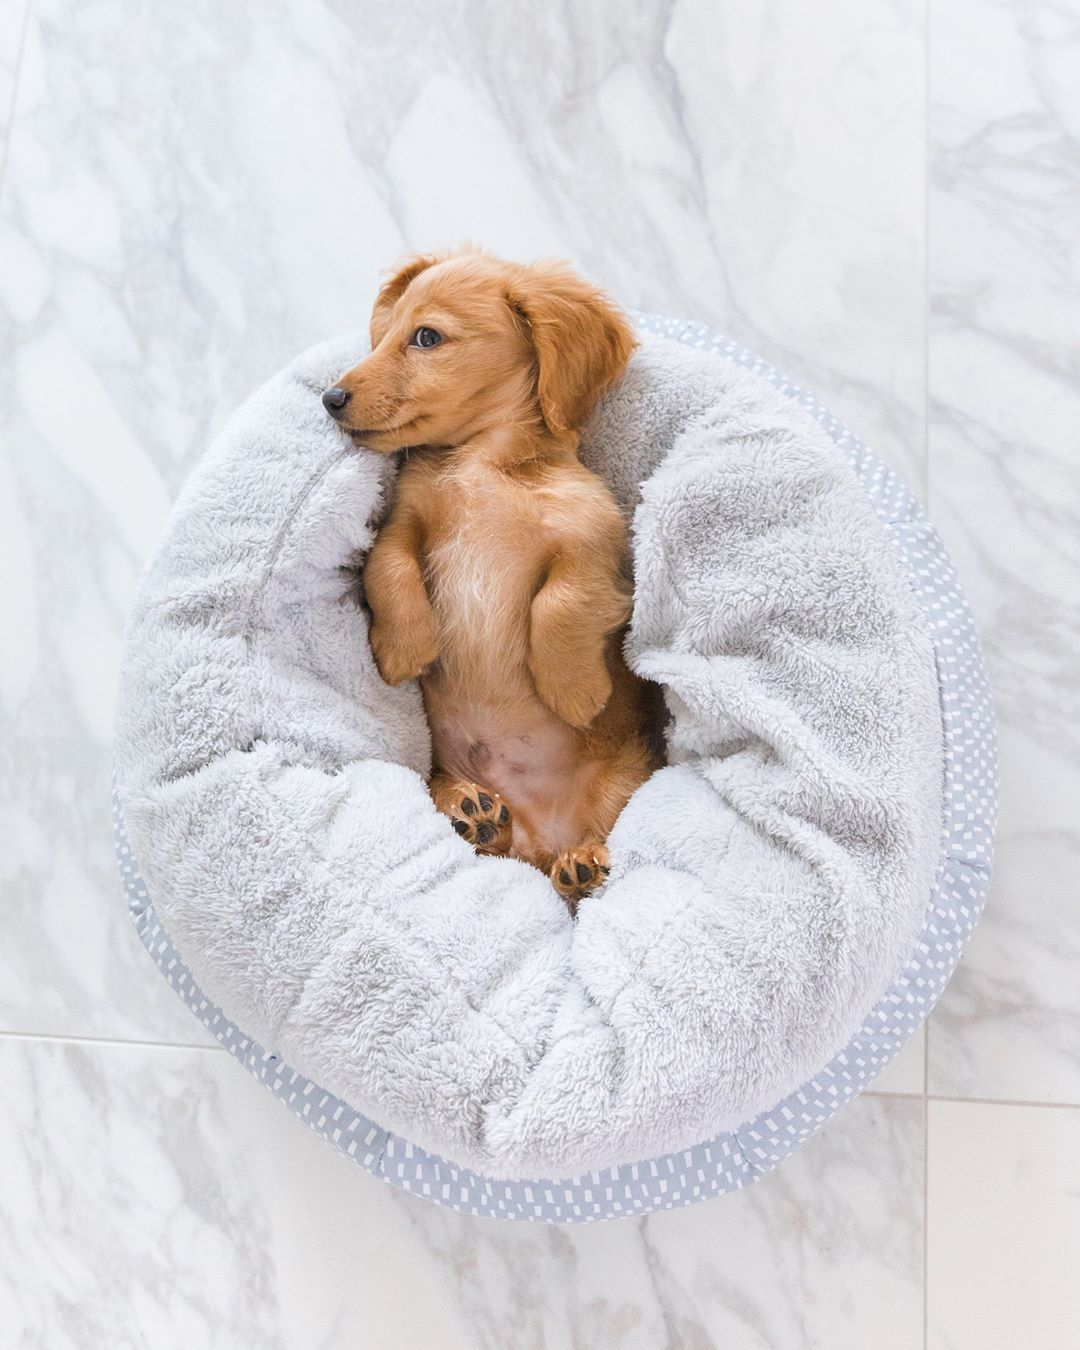 Cute Dachshund Puppy If You Love Dachshunds Visit Our Blog To